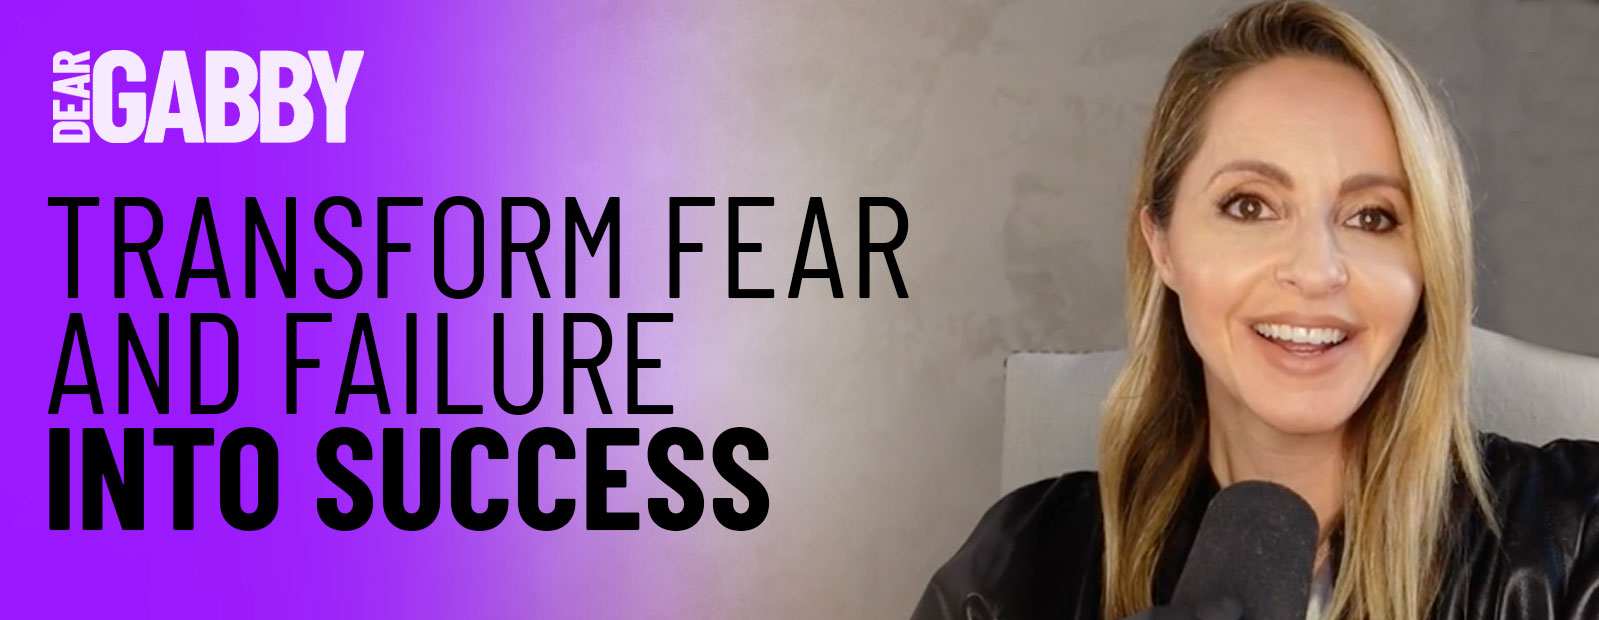 Transform Fear and Failure into Success